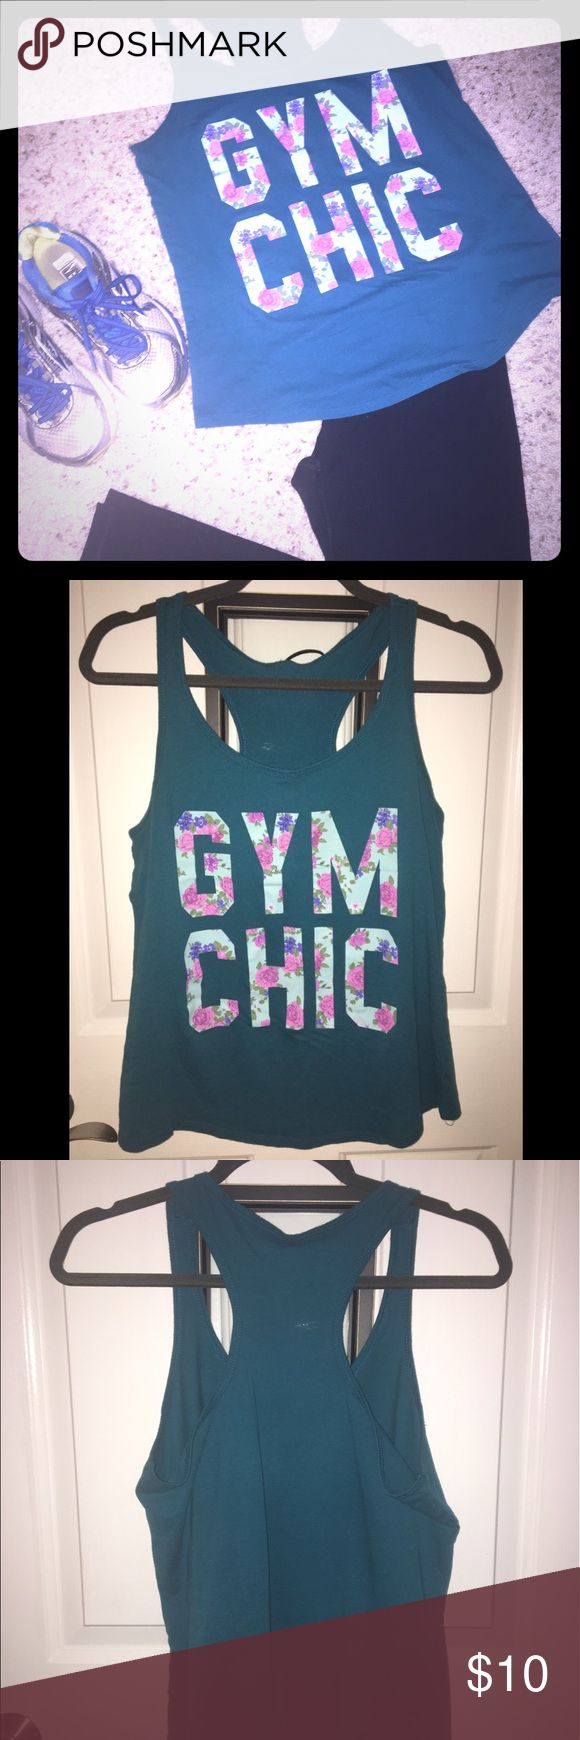 "Razorback tank top Dark teal blue ""Gym Chic"" razorback tank top with floral design. Look super cute and feel amazing 💁🏼 Worn a handful of times and well taken care of, no visible damage to shirt or design. No tag found 🤔 but fits the same as a M tank top of the same design. Tops Tank Tops"